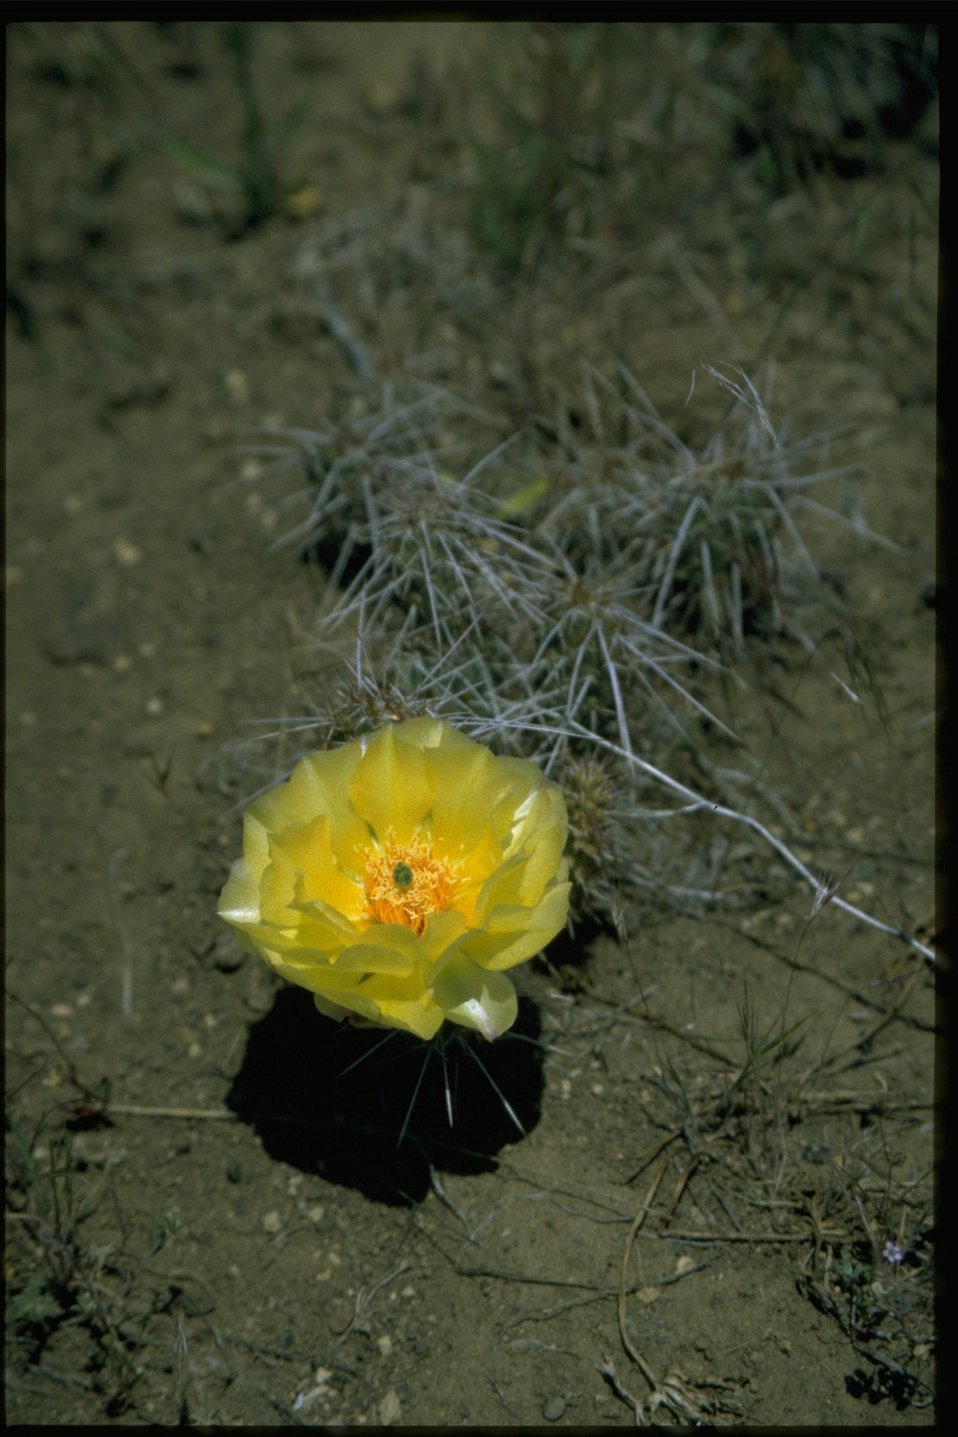 Medium shot of Opuntia.